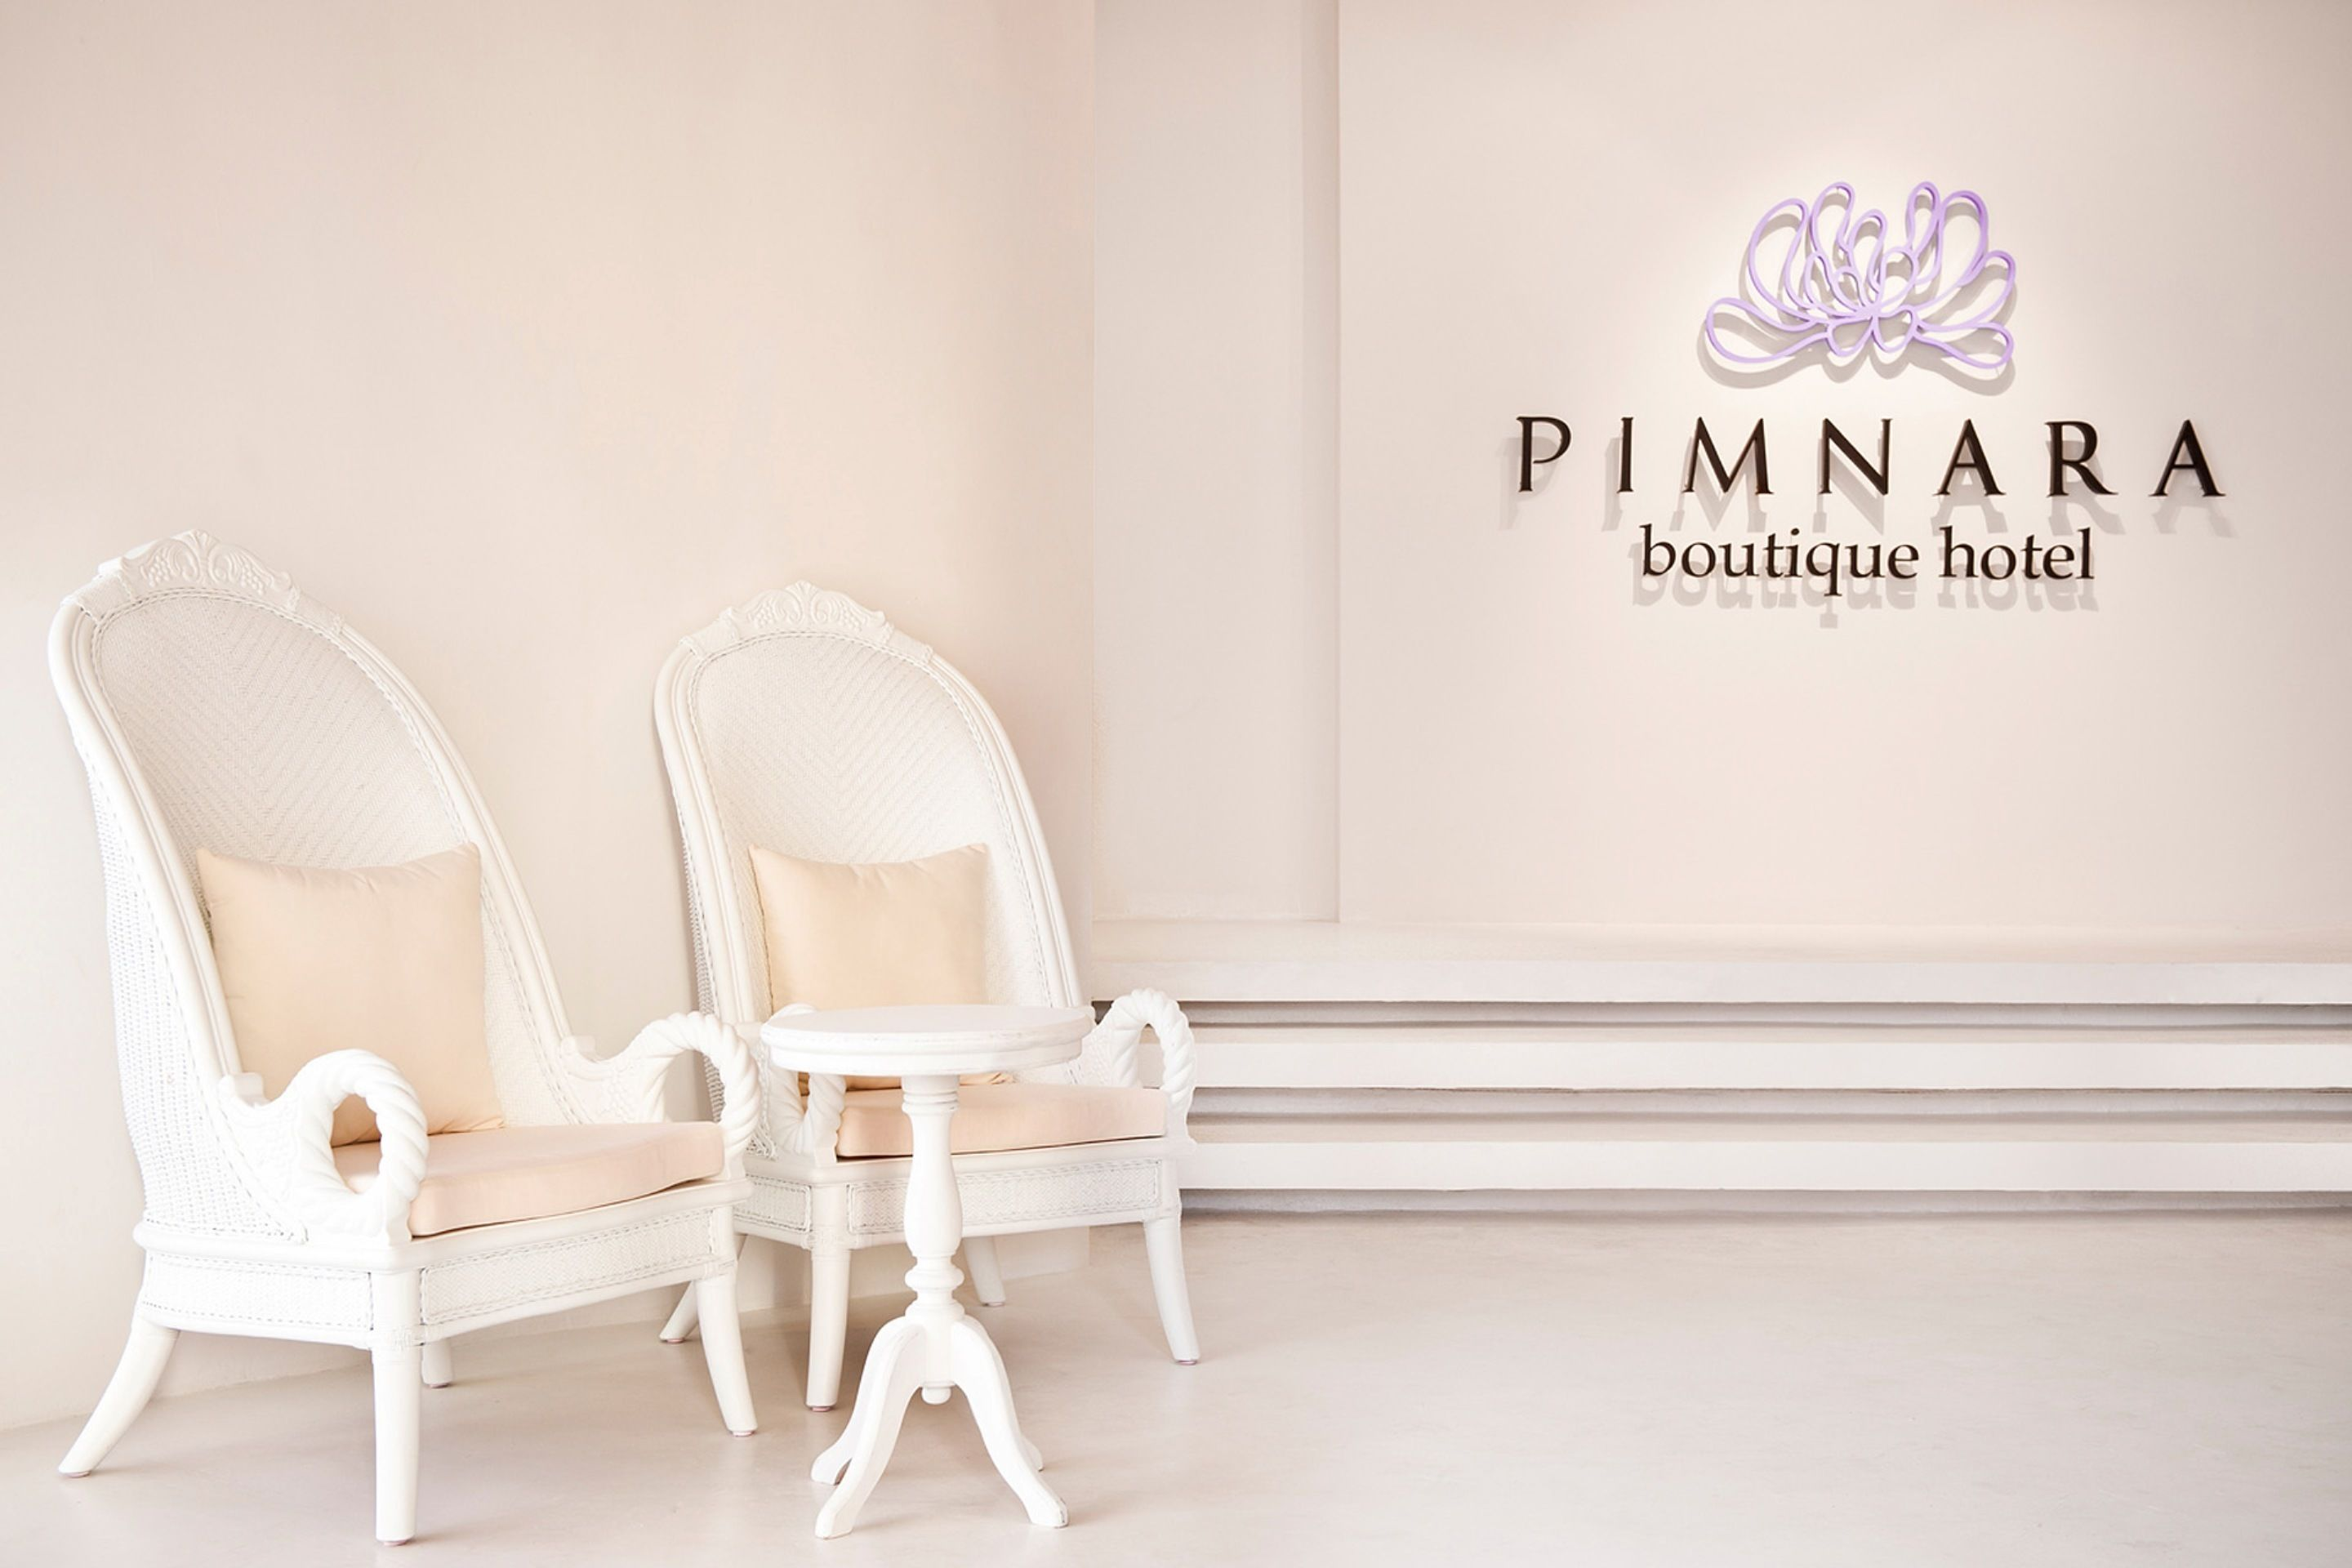 Pimnara Boutique